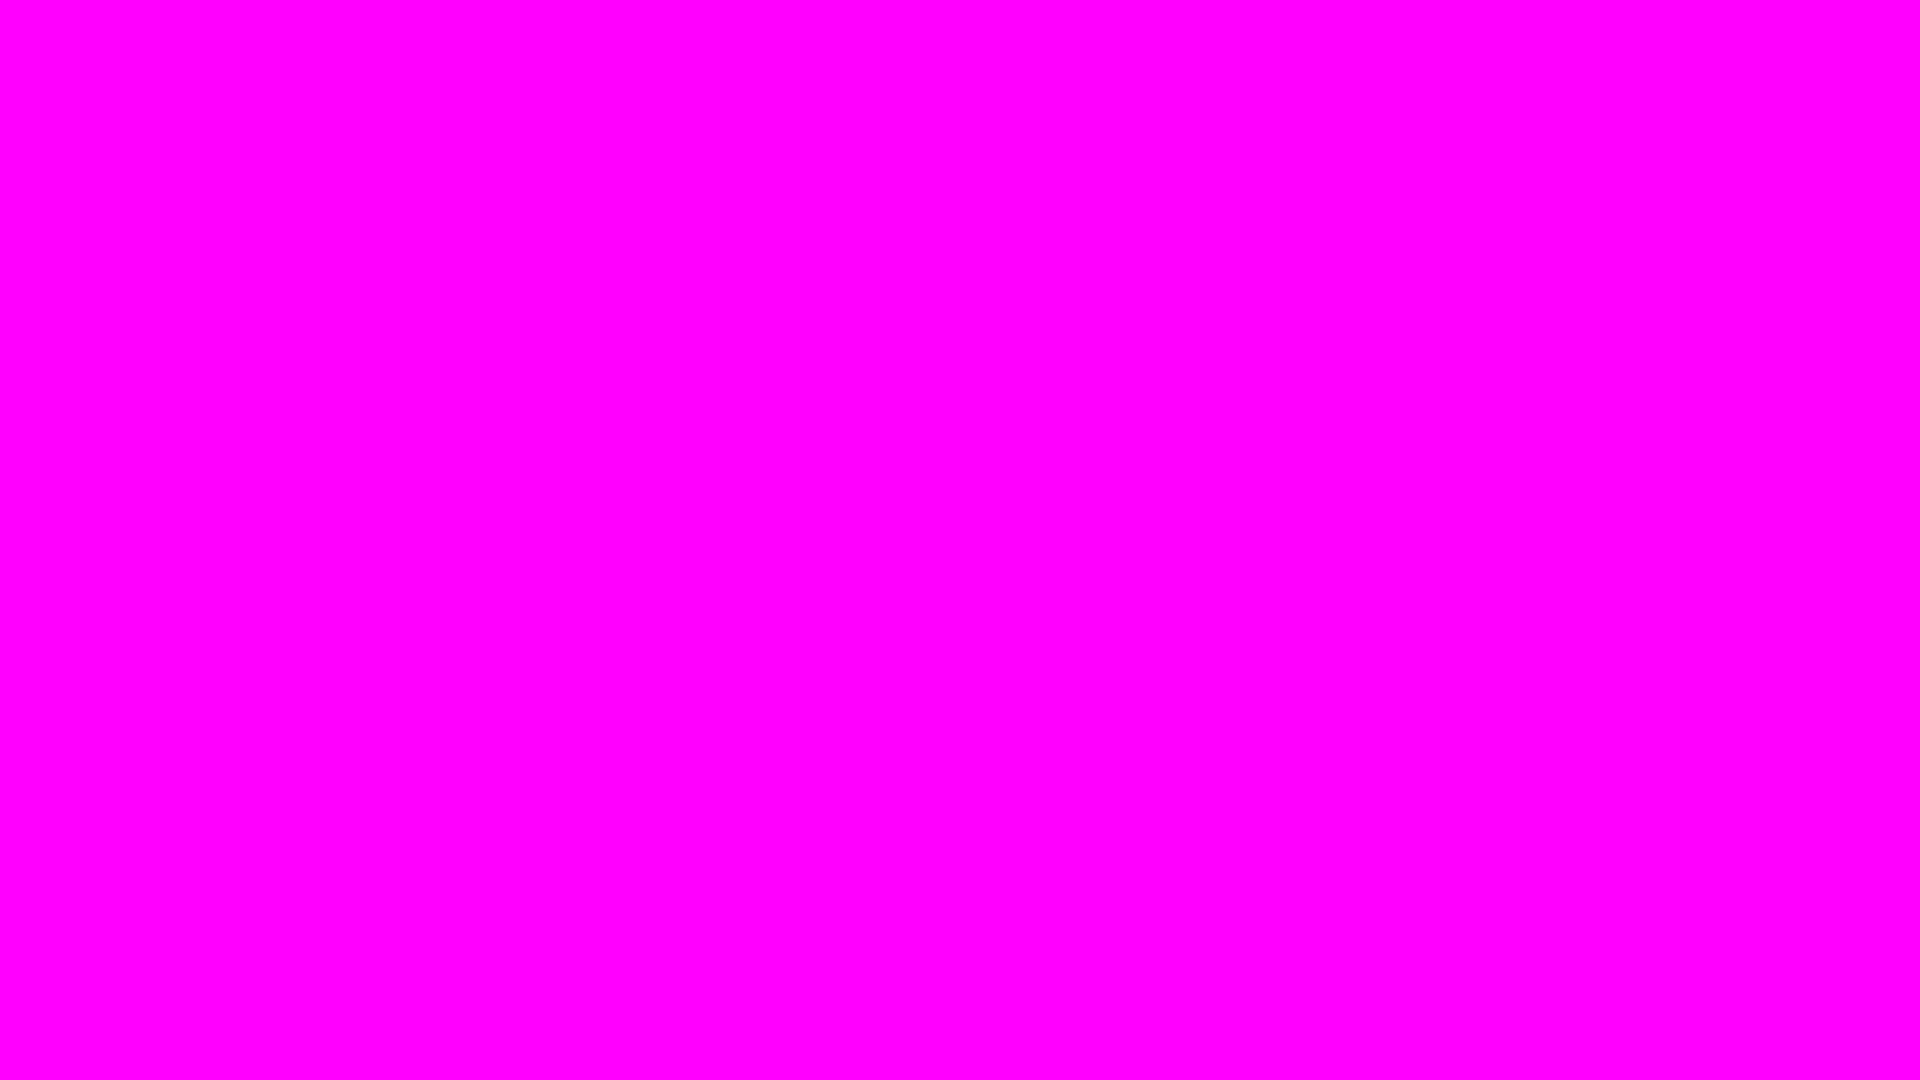 1920x1080 Fuchsia Solid Color Background